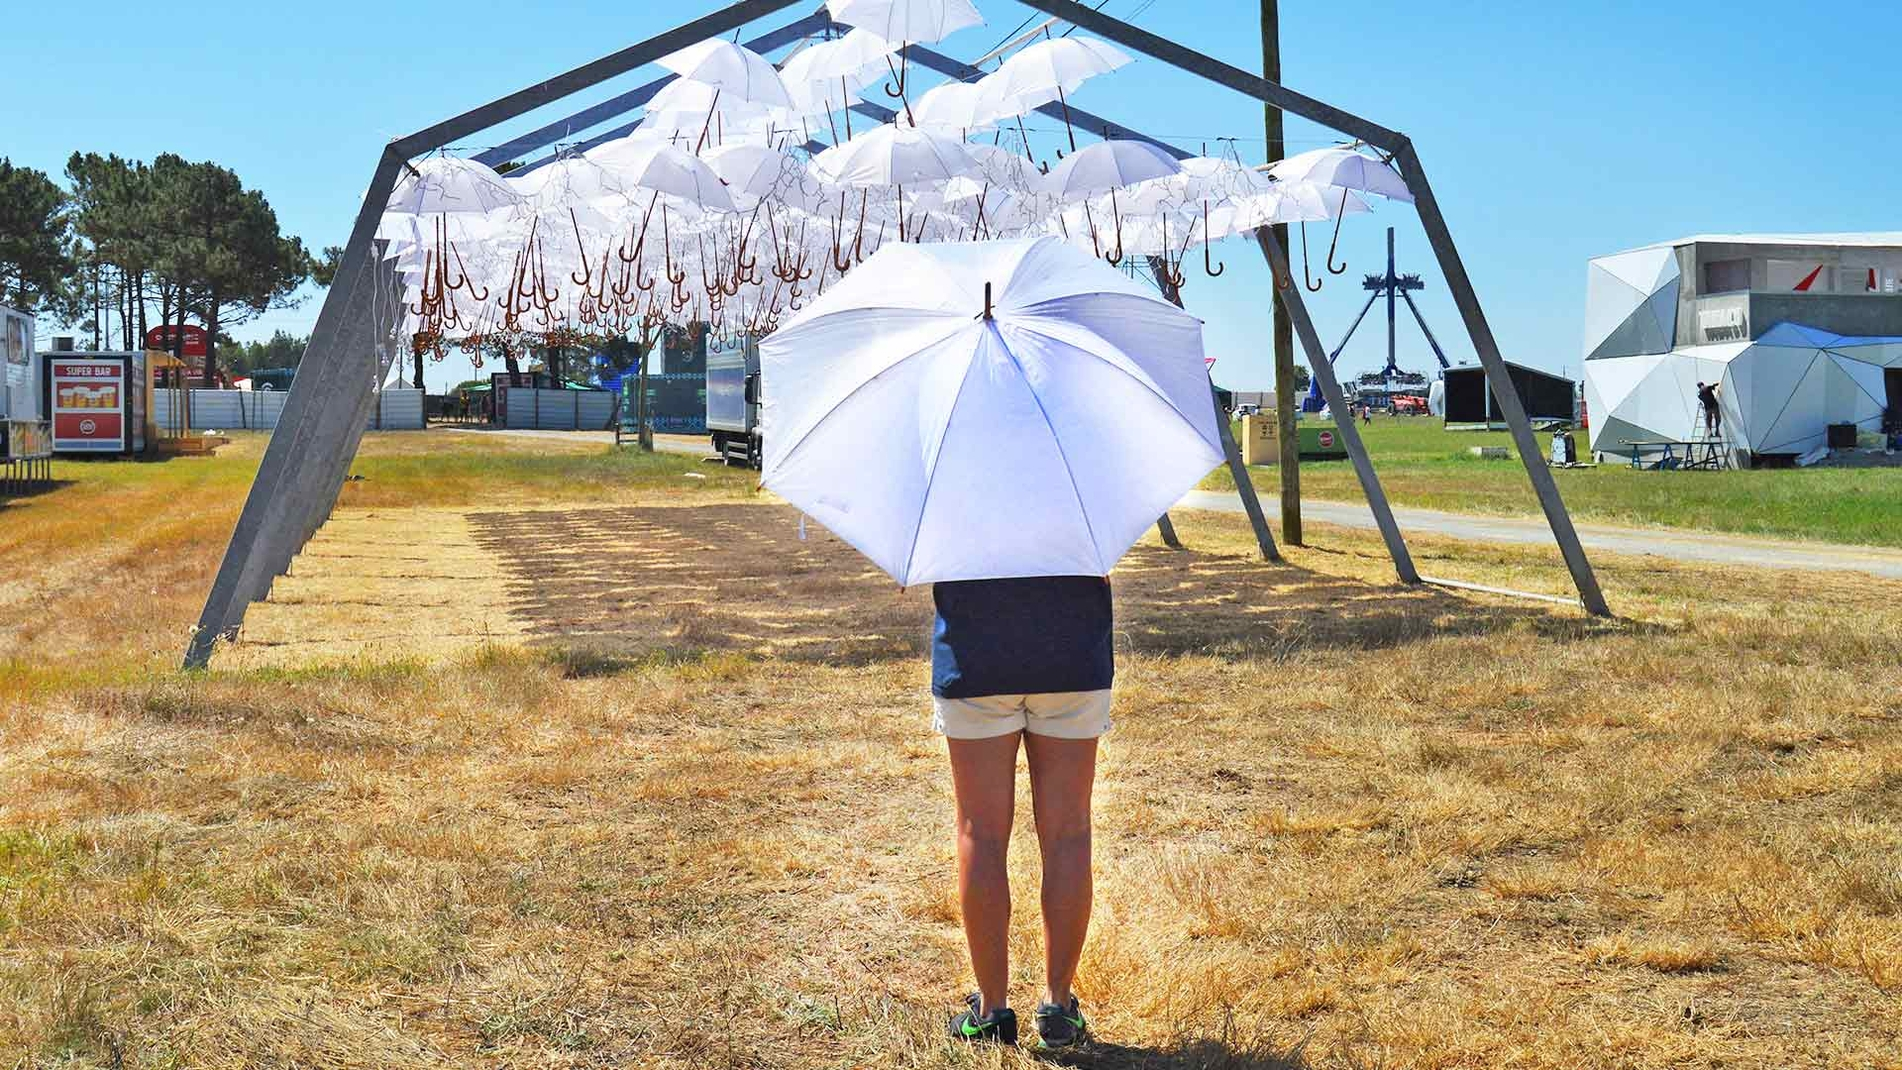 White Umbrella Sky Project  - Zambujeira do Mar'16